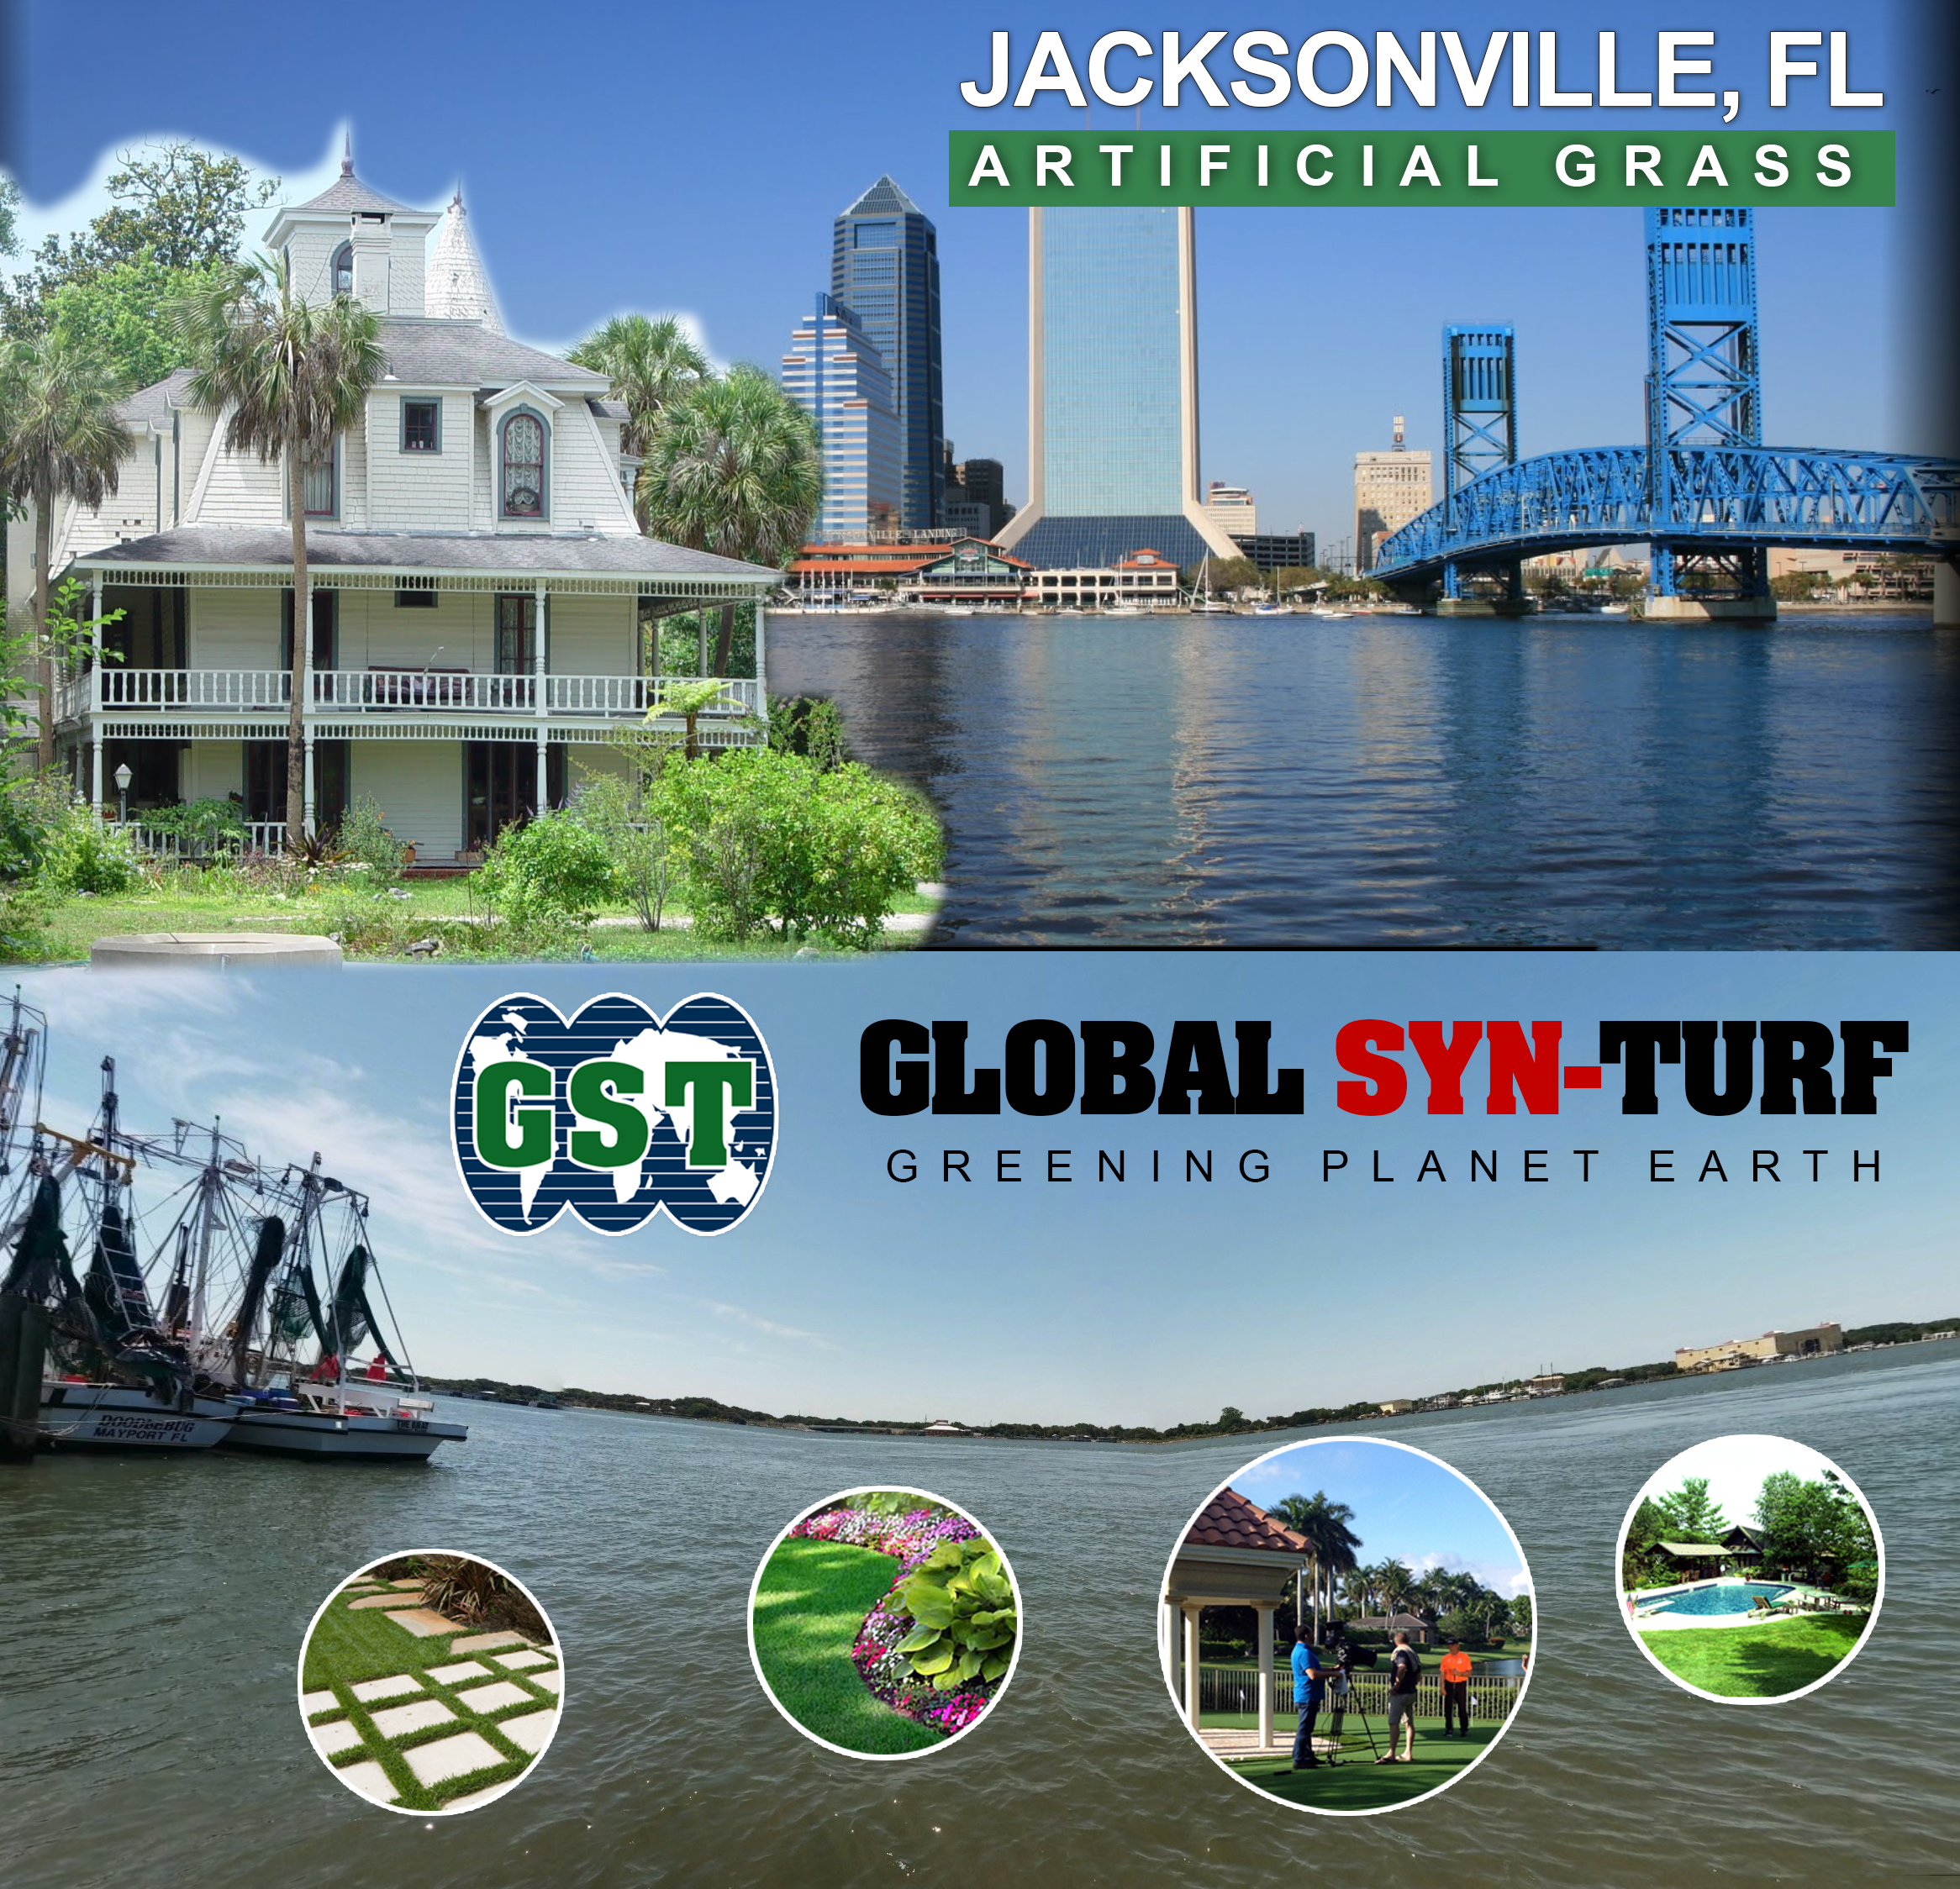 Artificial grass, synthetic turf in Jacksonville, Florida